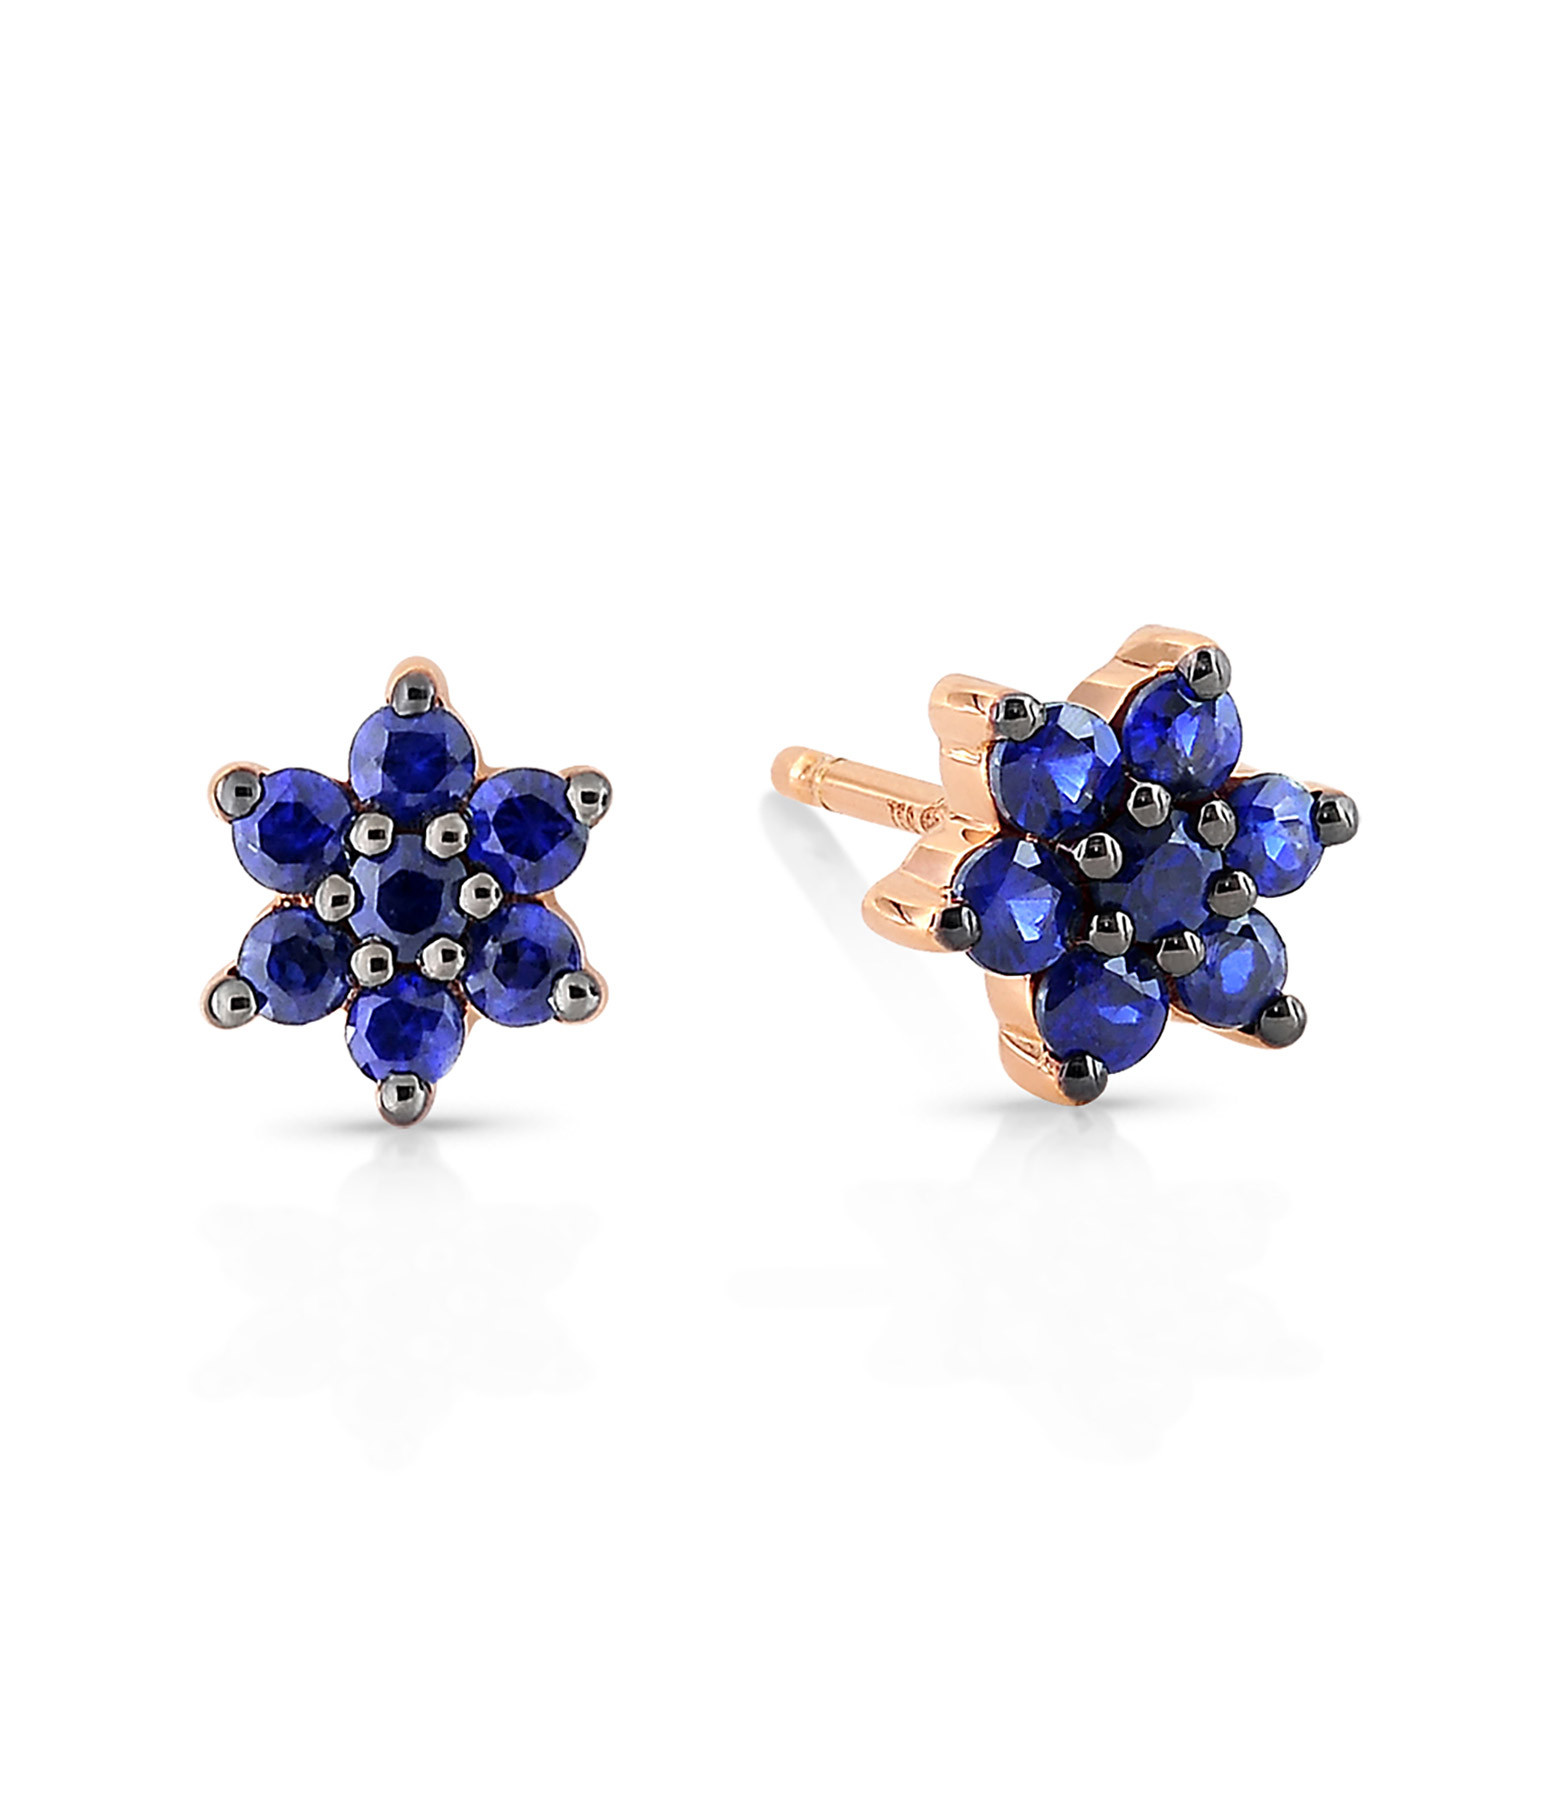 GINETTE NY - Boucles d'oreilles Star Puces Saphirs Or Rose